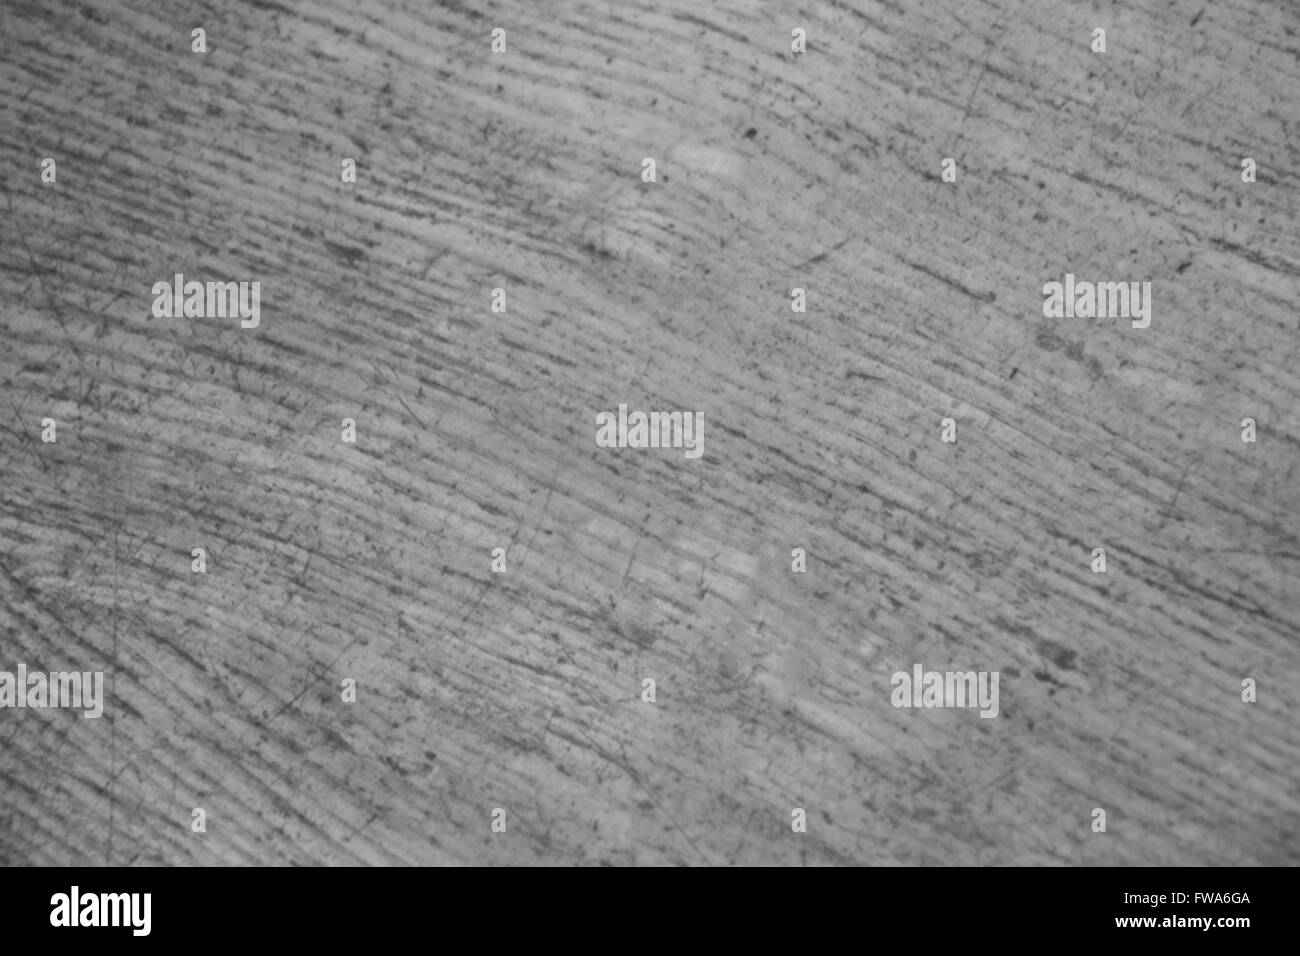 Old wooden table surface showing a well used texture - Stock Image